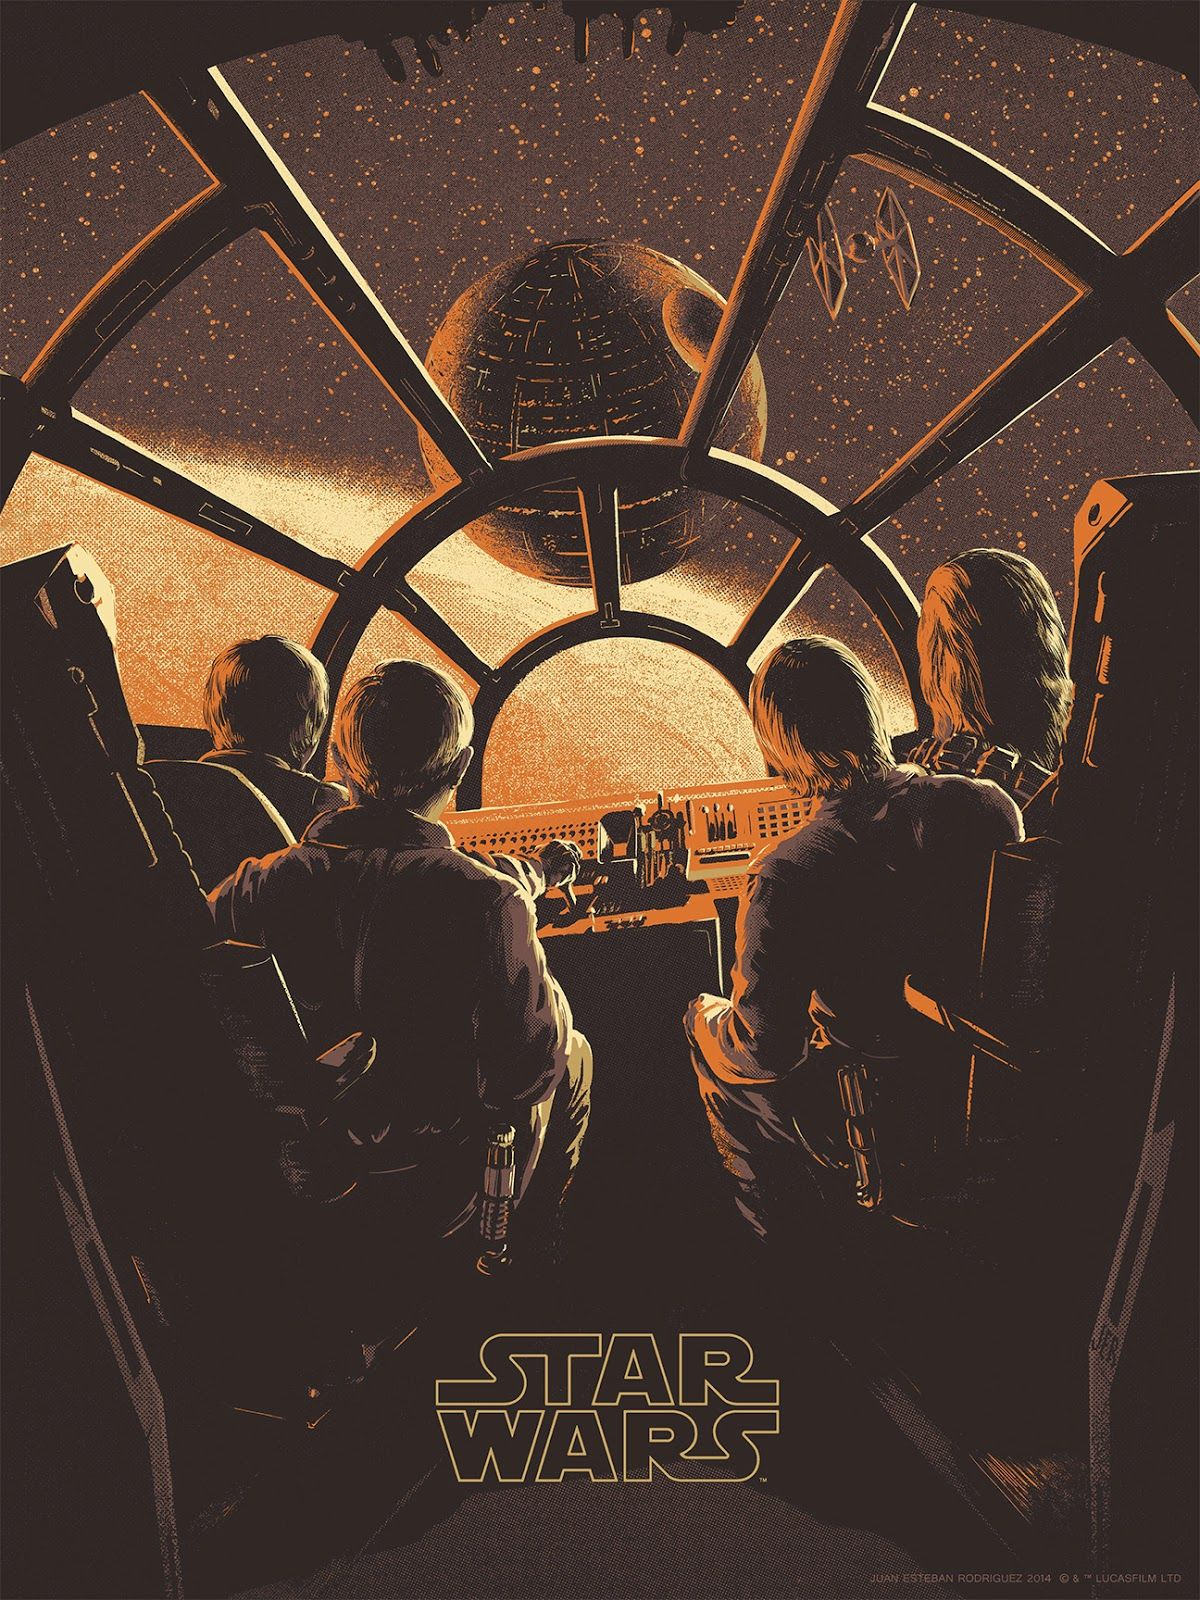 star wars art deco google search posters pinterest star wars art. Black Bedroom Furniture Sets. Home Design Ideas